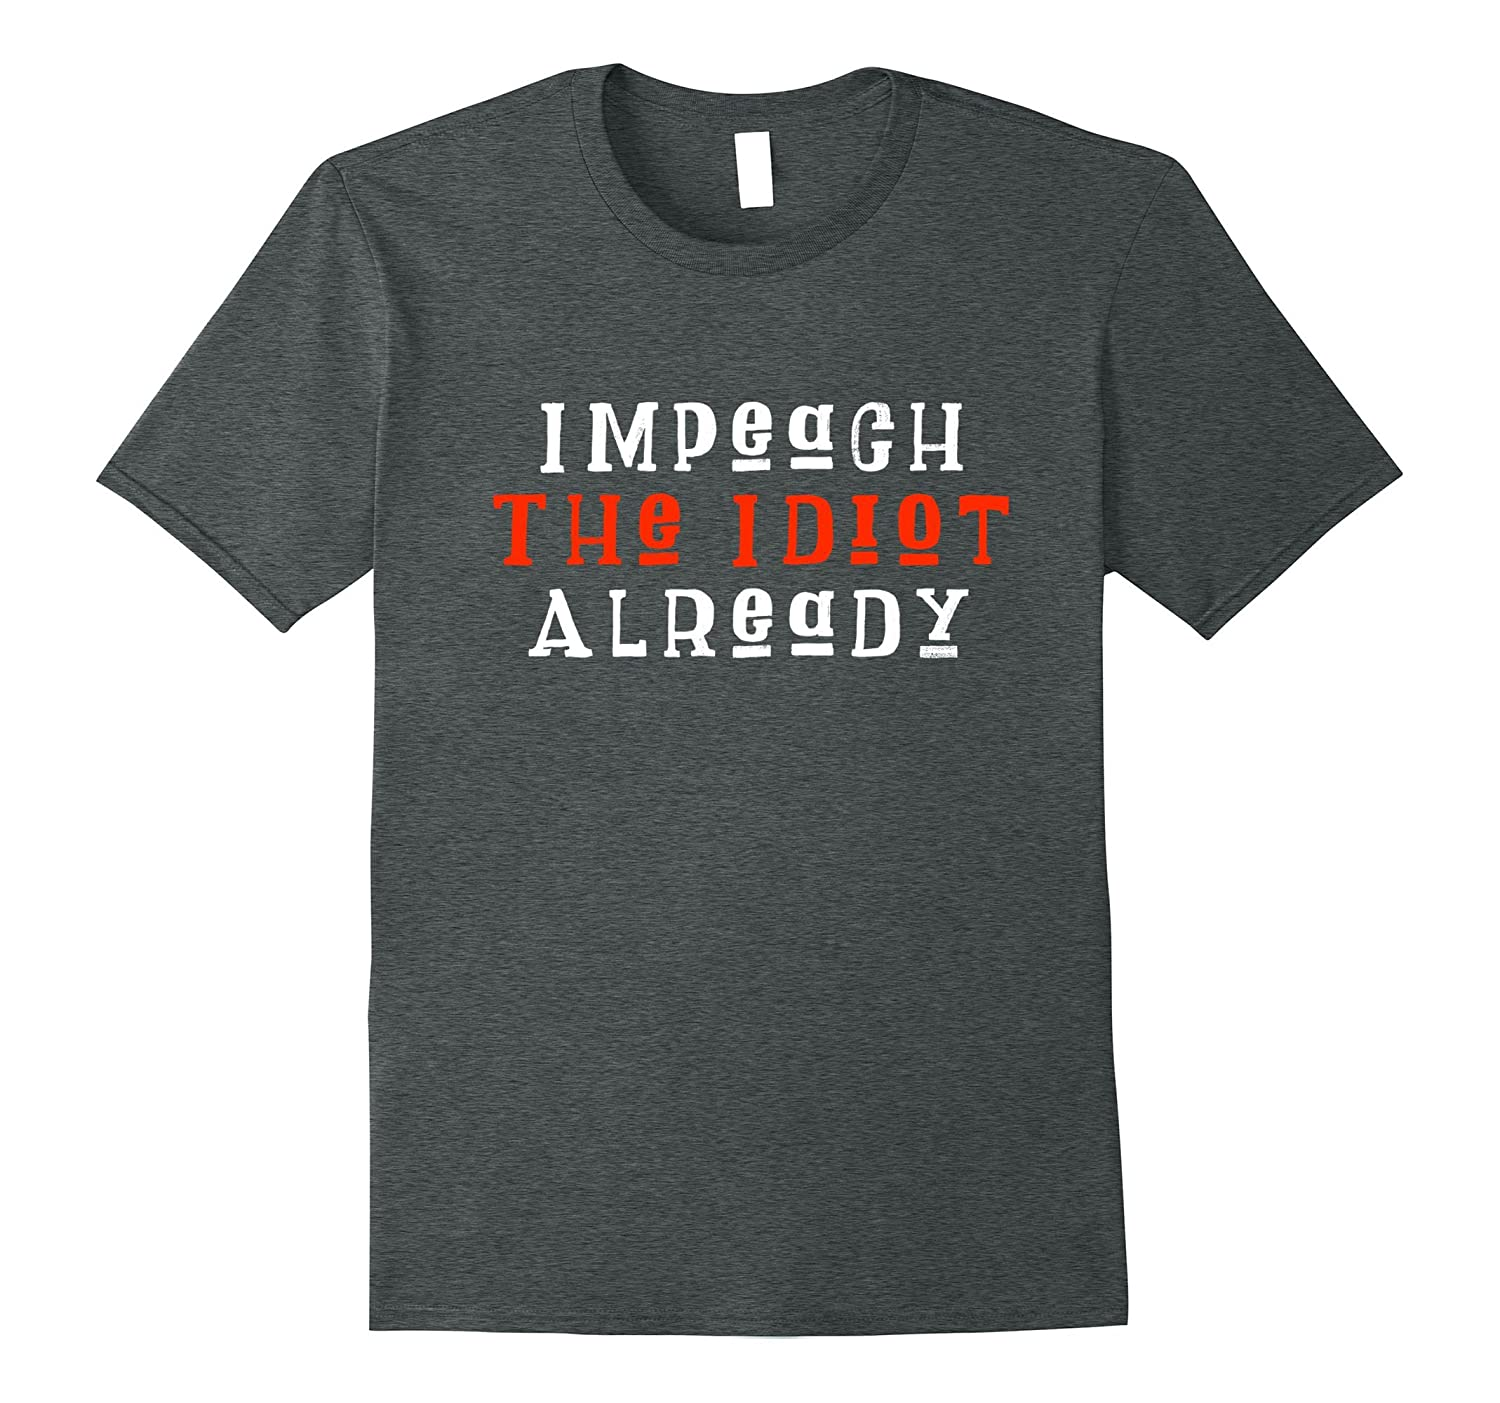 Impeach the Idiot, Not My President, Anti-Trump shirt